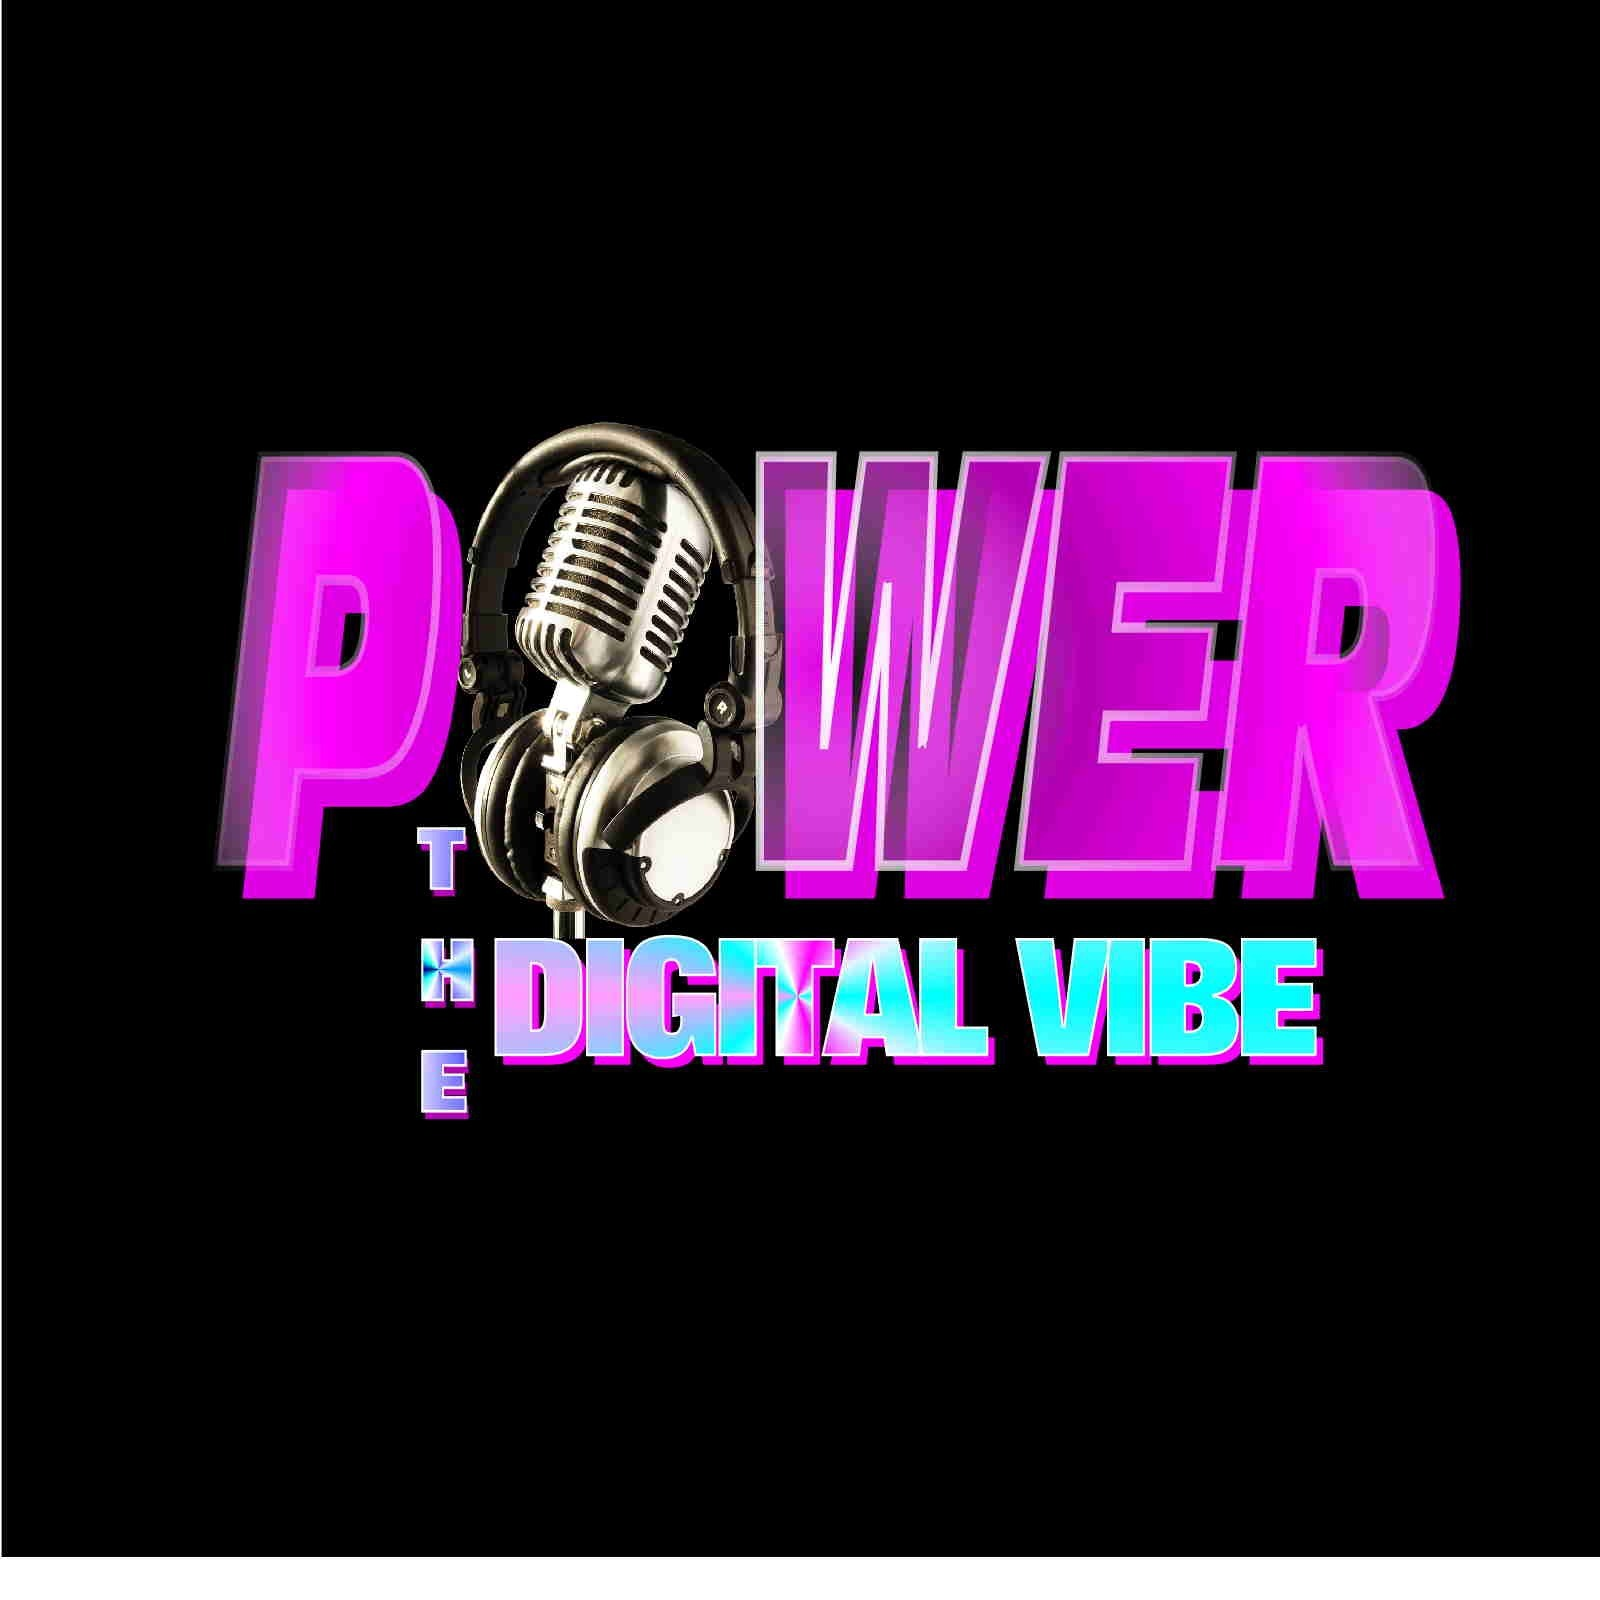 Inspire. Motivate. Educate! The Digital Vibe Podcast